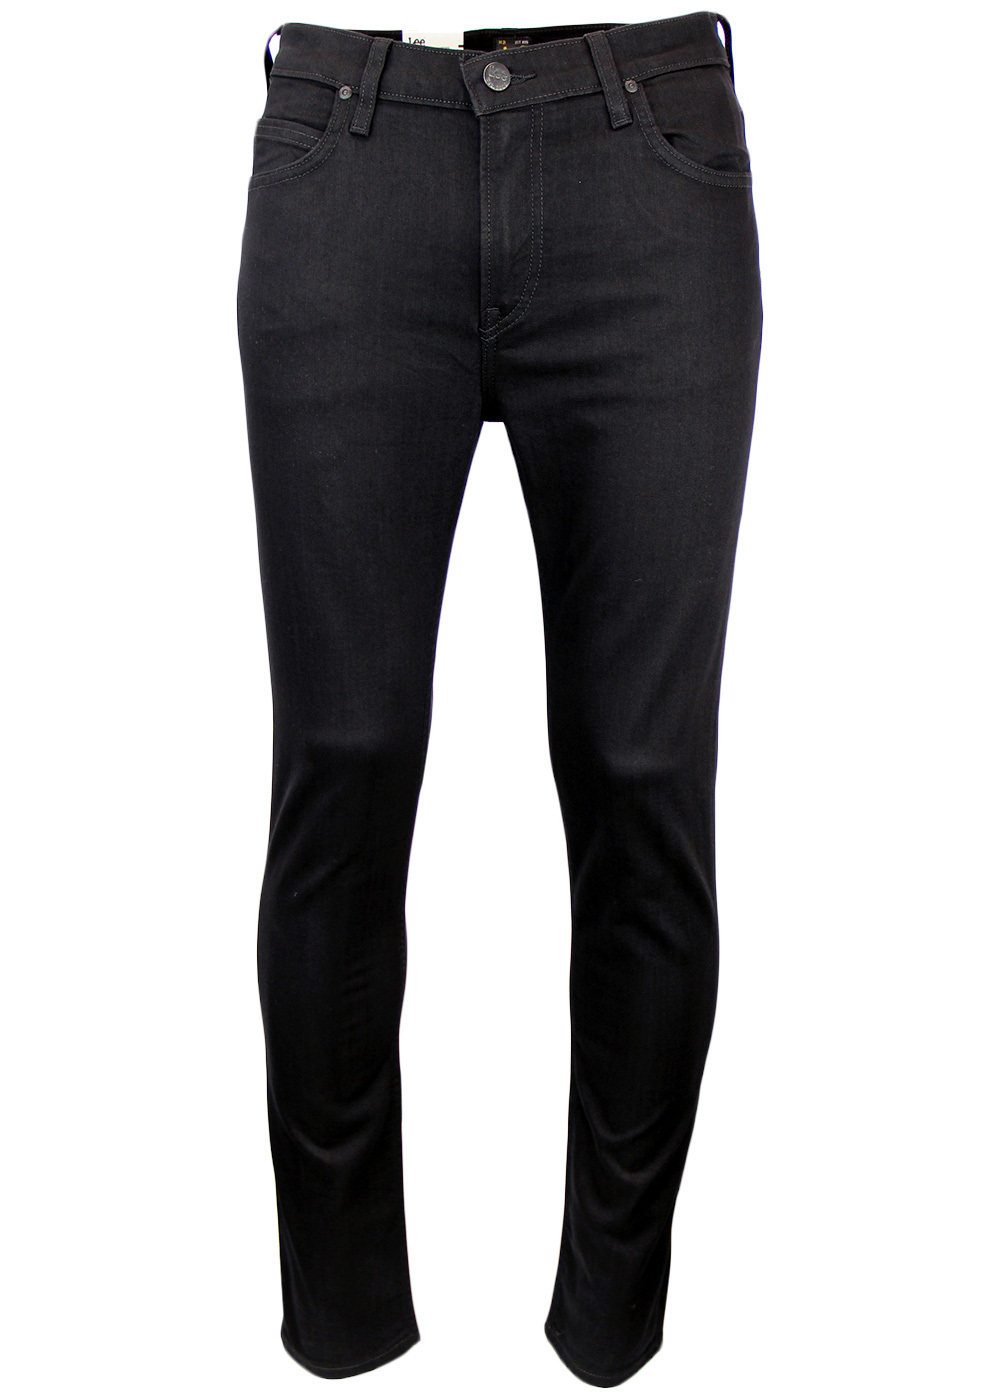 Rider LEE Retro Indie Slim Leg Denim Black Jeans